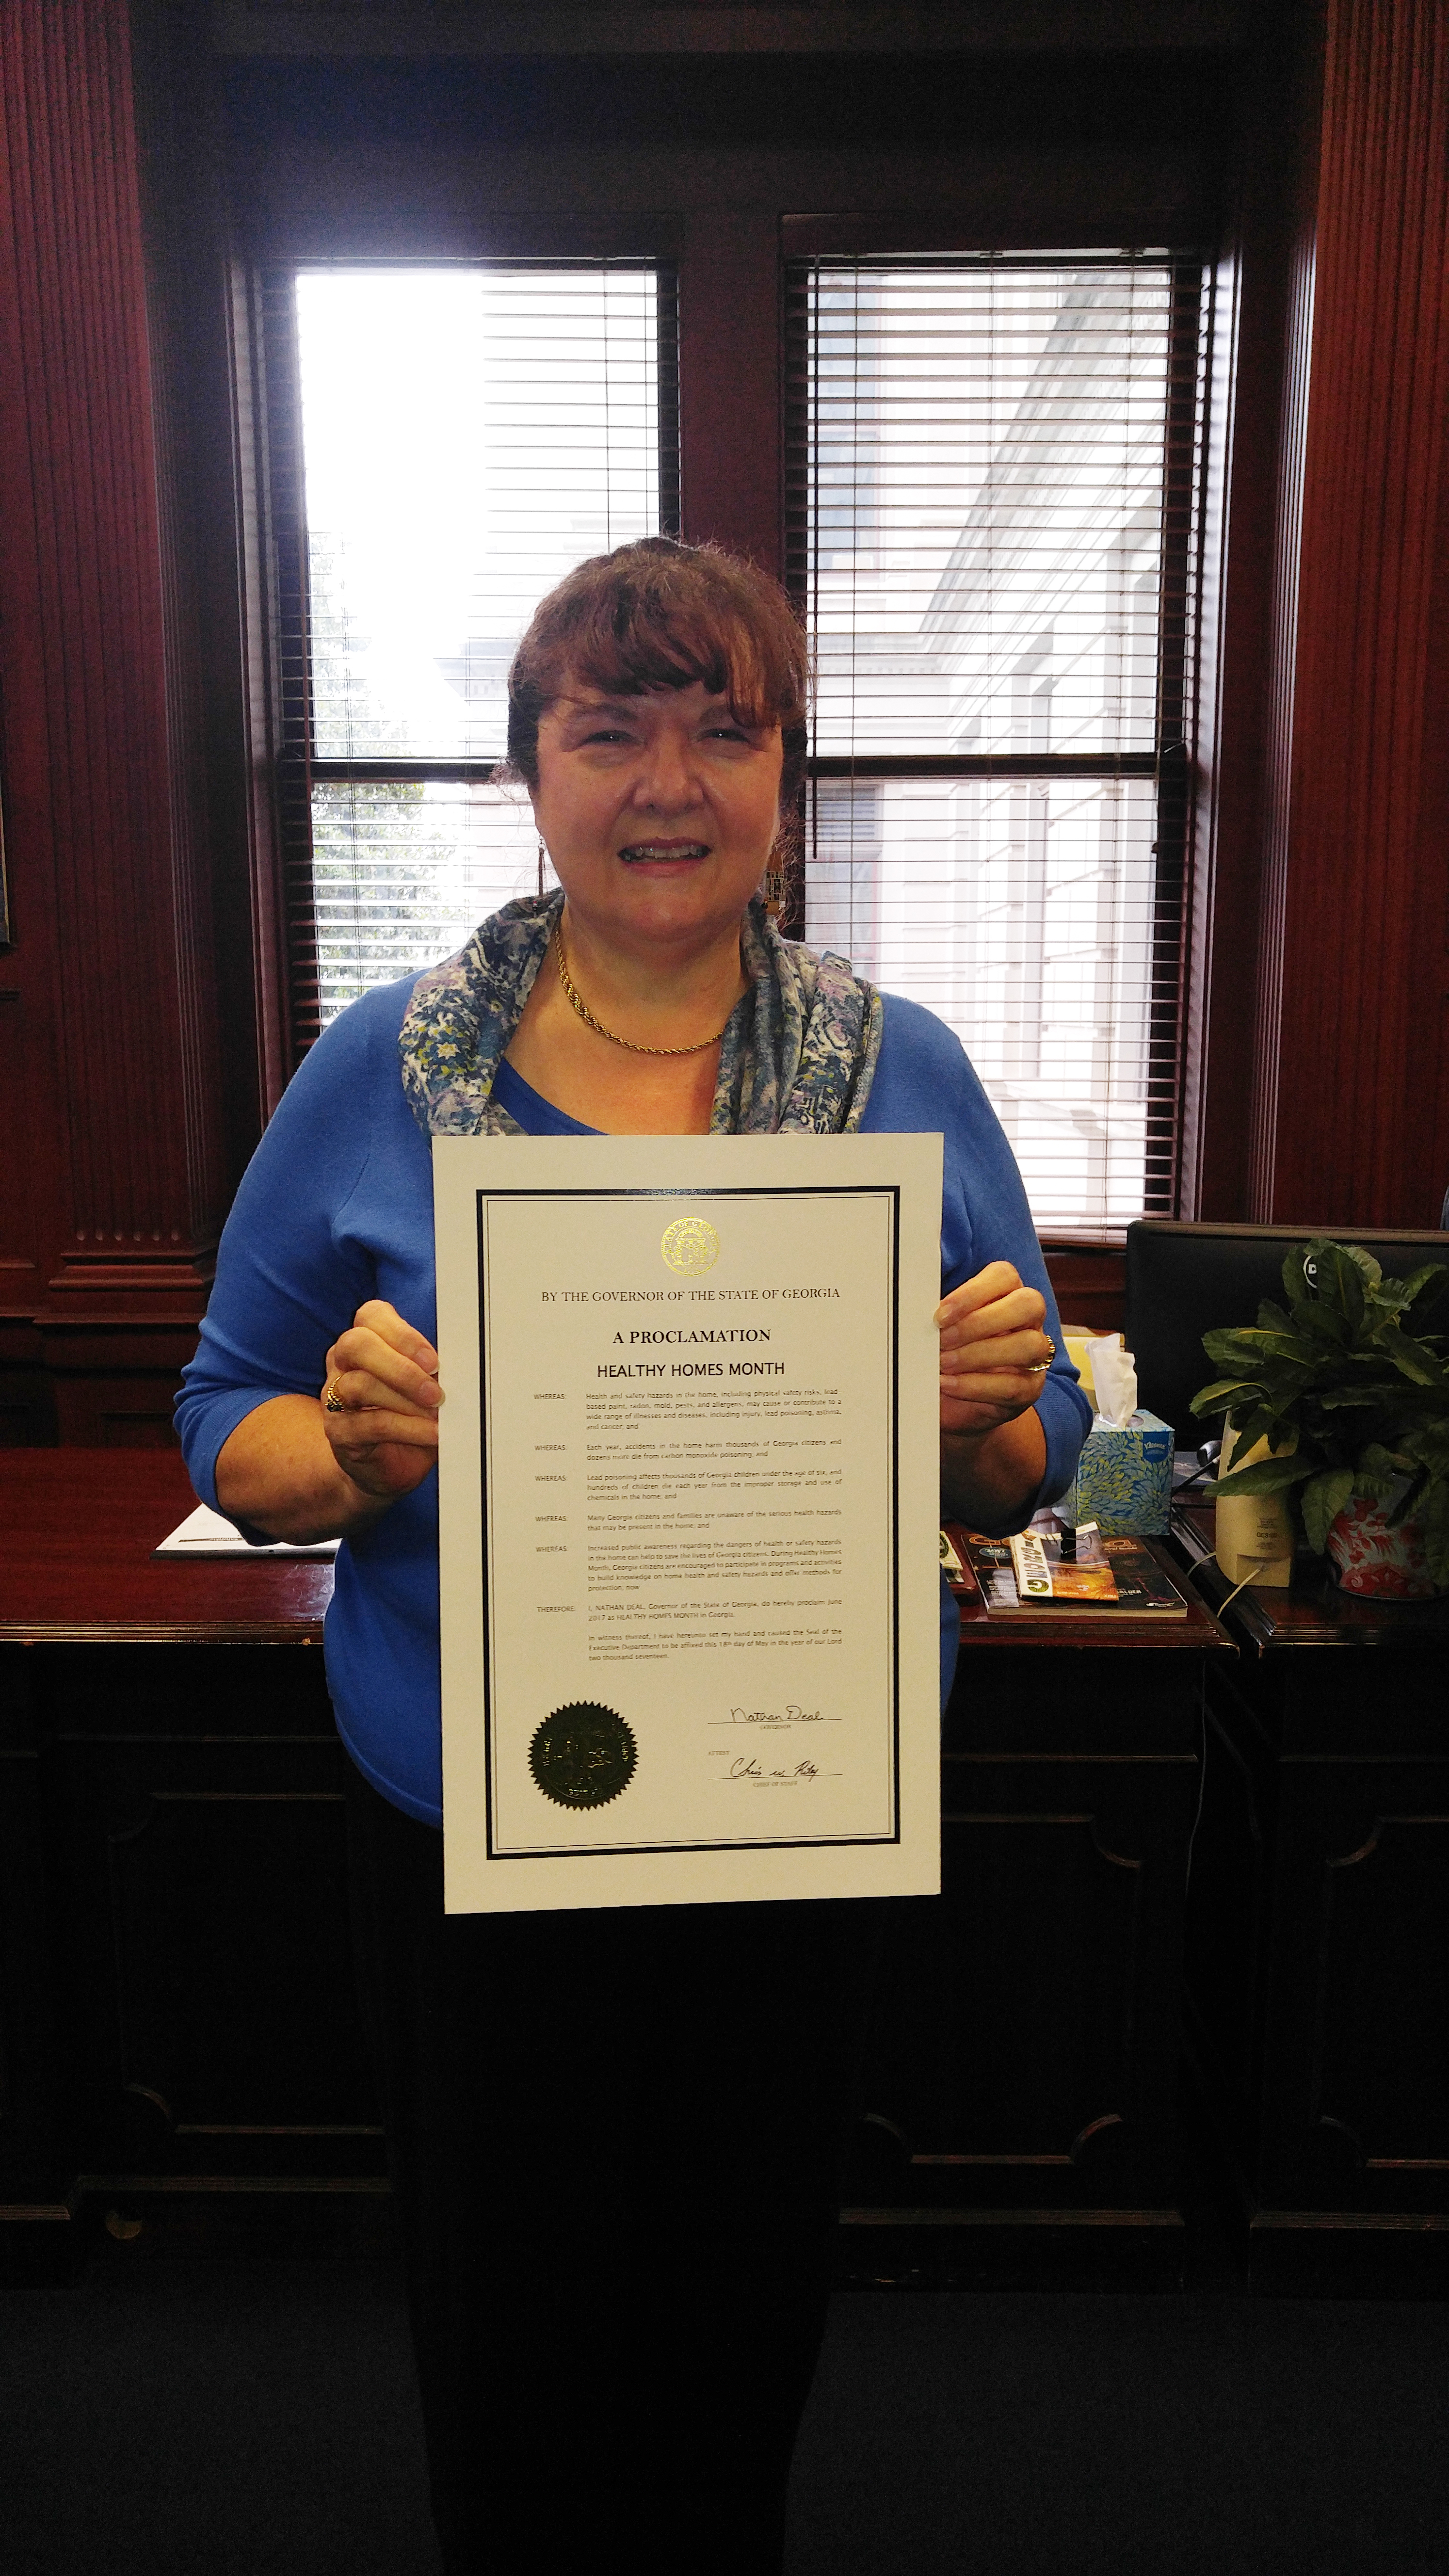 Pamela Turner, UGA Extension housing specialist, serves on the boards of the Georgia Healthy Home Coalition and the Rural Georgia Healthy Housing Advisory Board, both of which worked with Gov. Nathan Deal to proclaim June Healthy Homes Month.